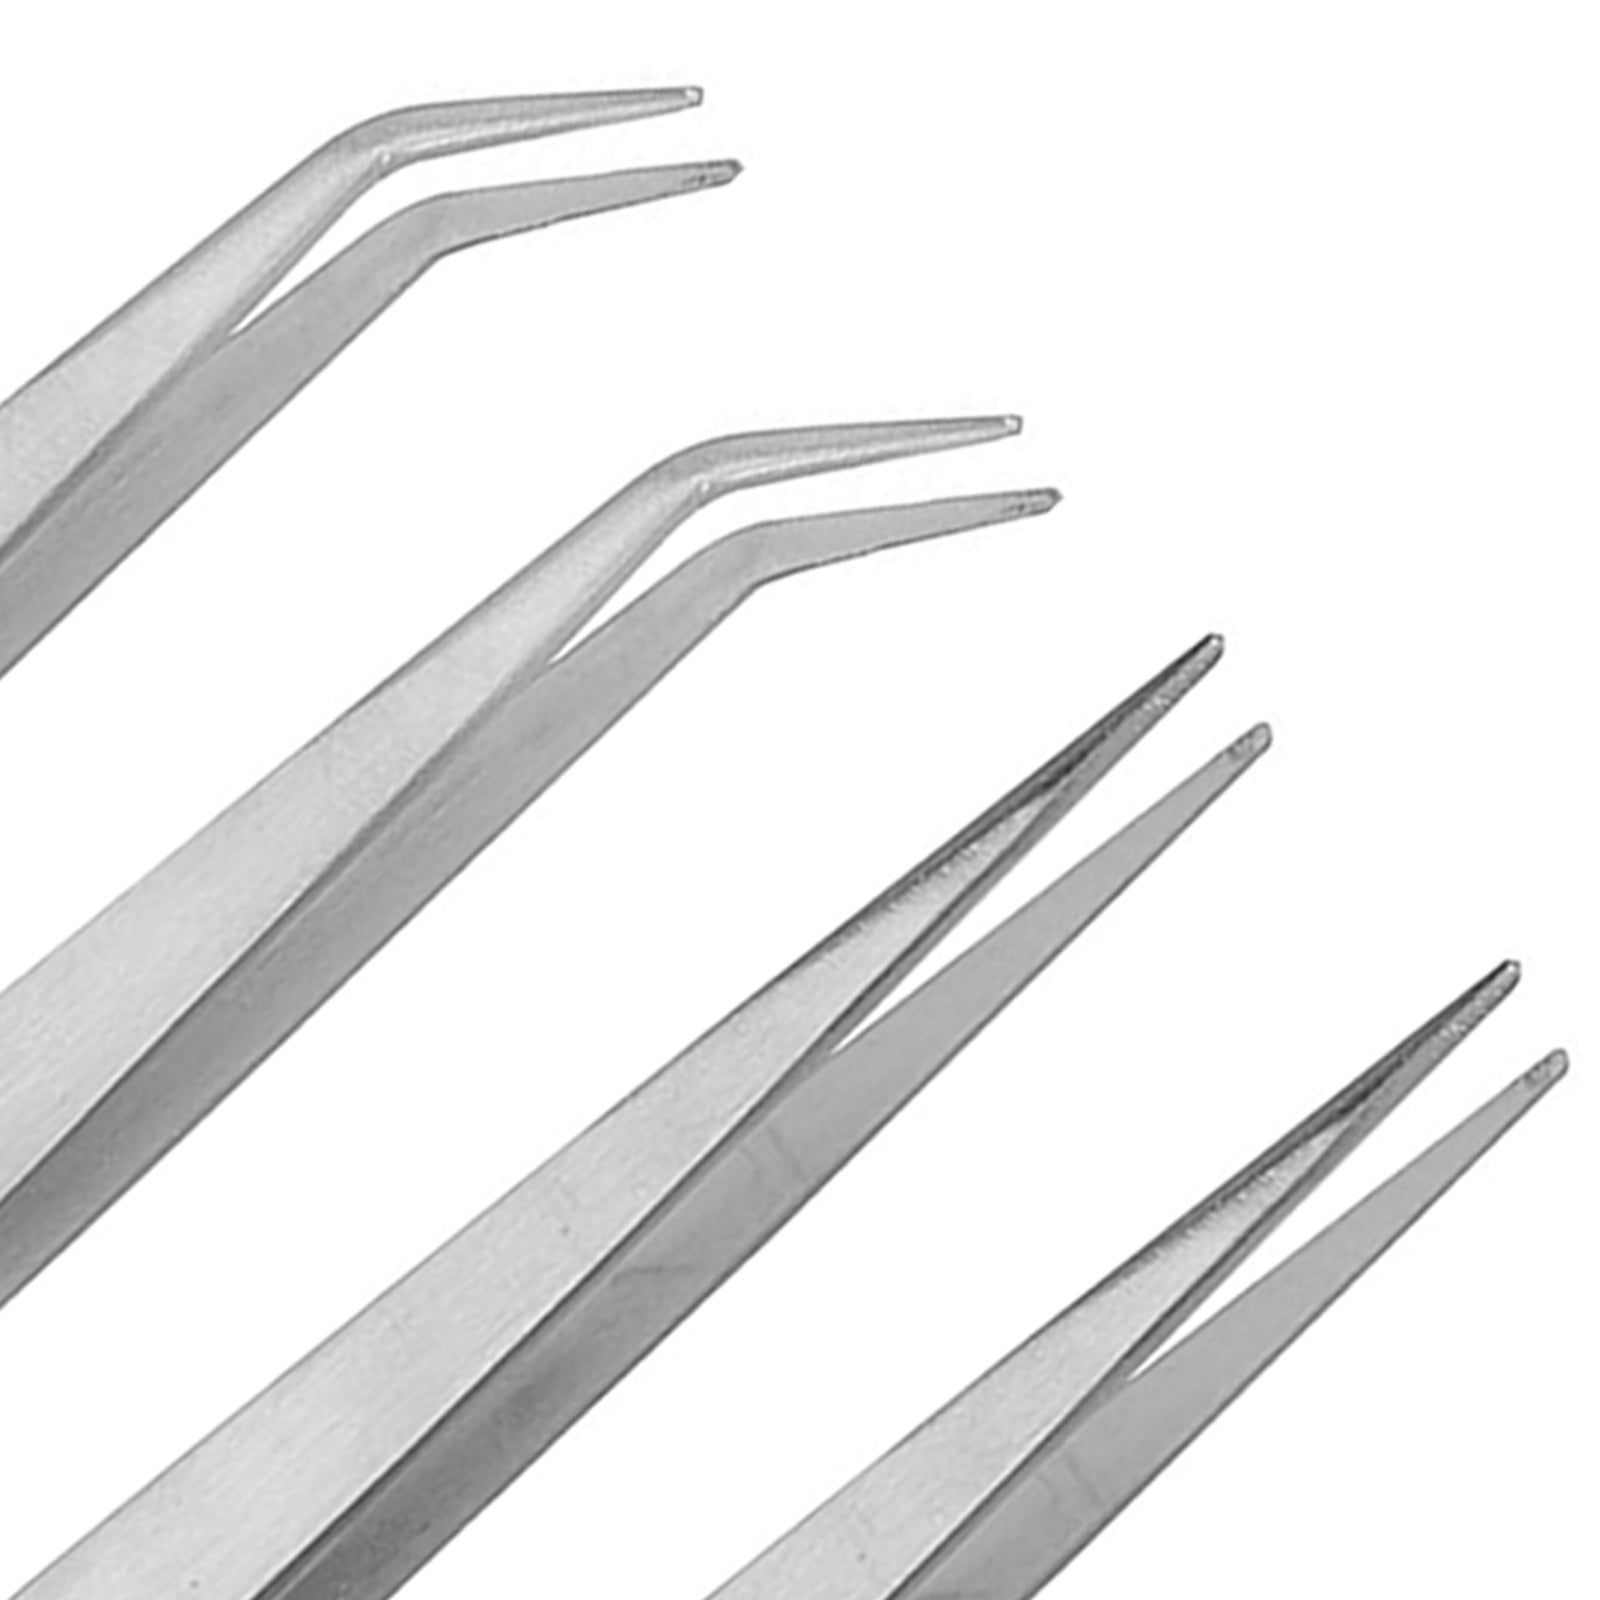 Straight and Curved Bent Tweezers for Resin Jewelry Casting 4-count